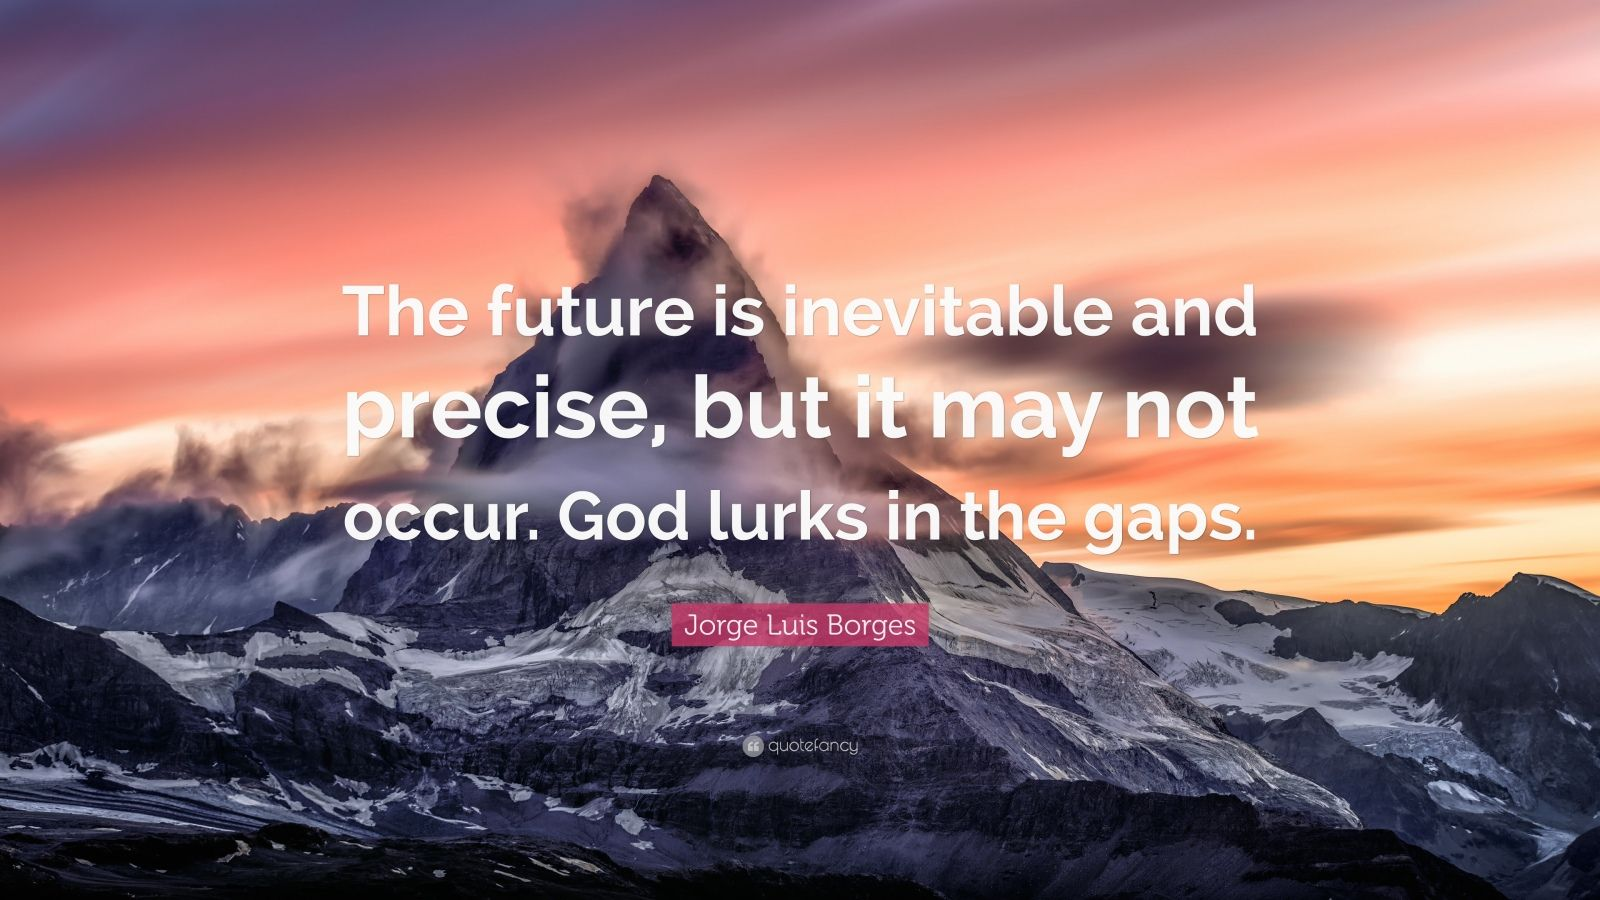 """Jorge Luis Borges Quote: """"The future is inevitable and precise, but it may not occur. God lurks in the gaps."""""""